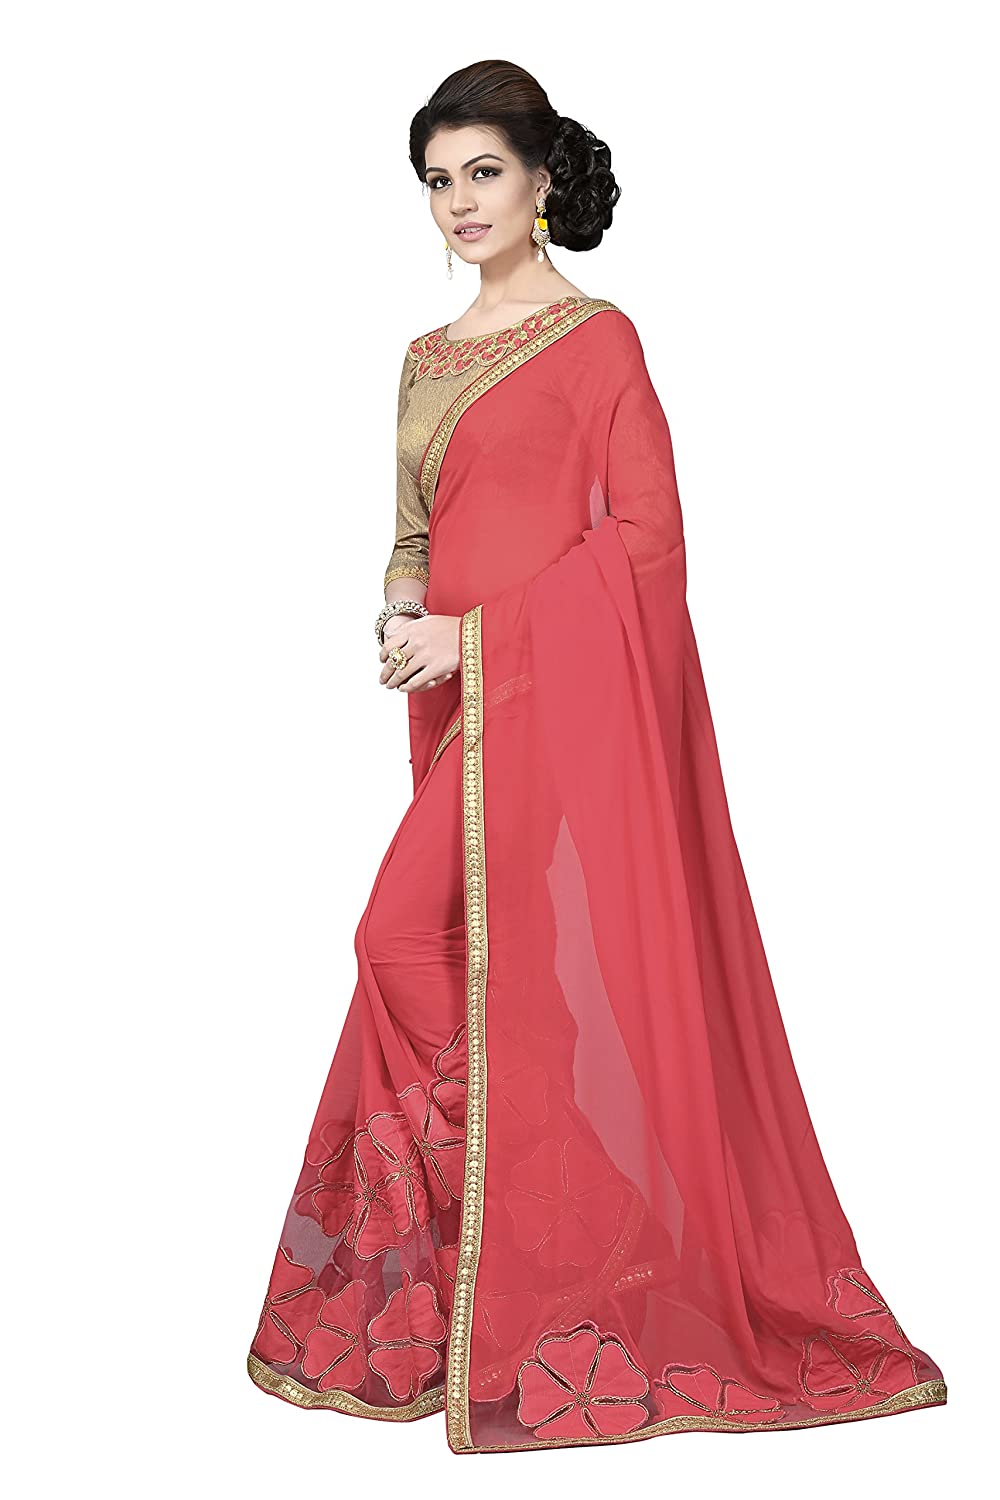 f96ef470b5 Palav Women's Chiffon Sarees Party Wear/Fancy Chiffon Sarees/Embroidered Chiffon  Sarees - Punch Pink: Amazon.in: Clothing & Accessories